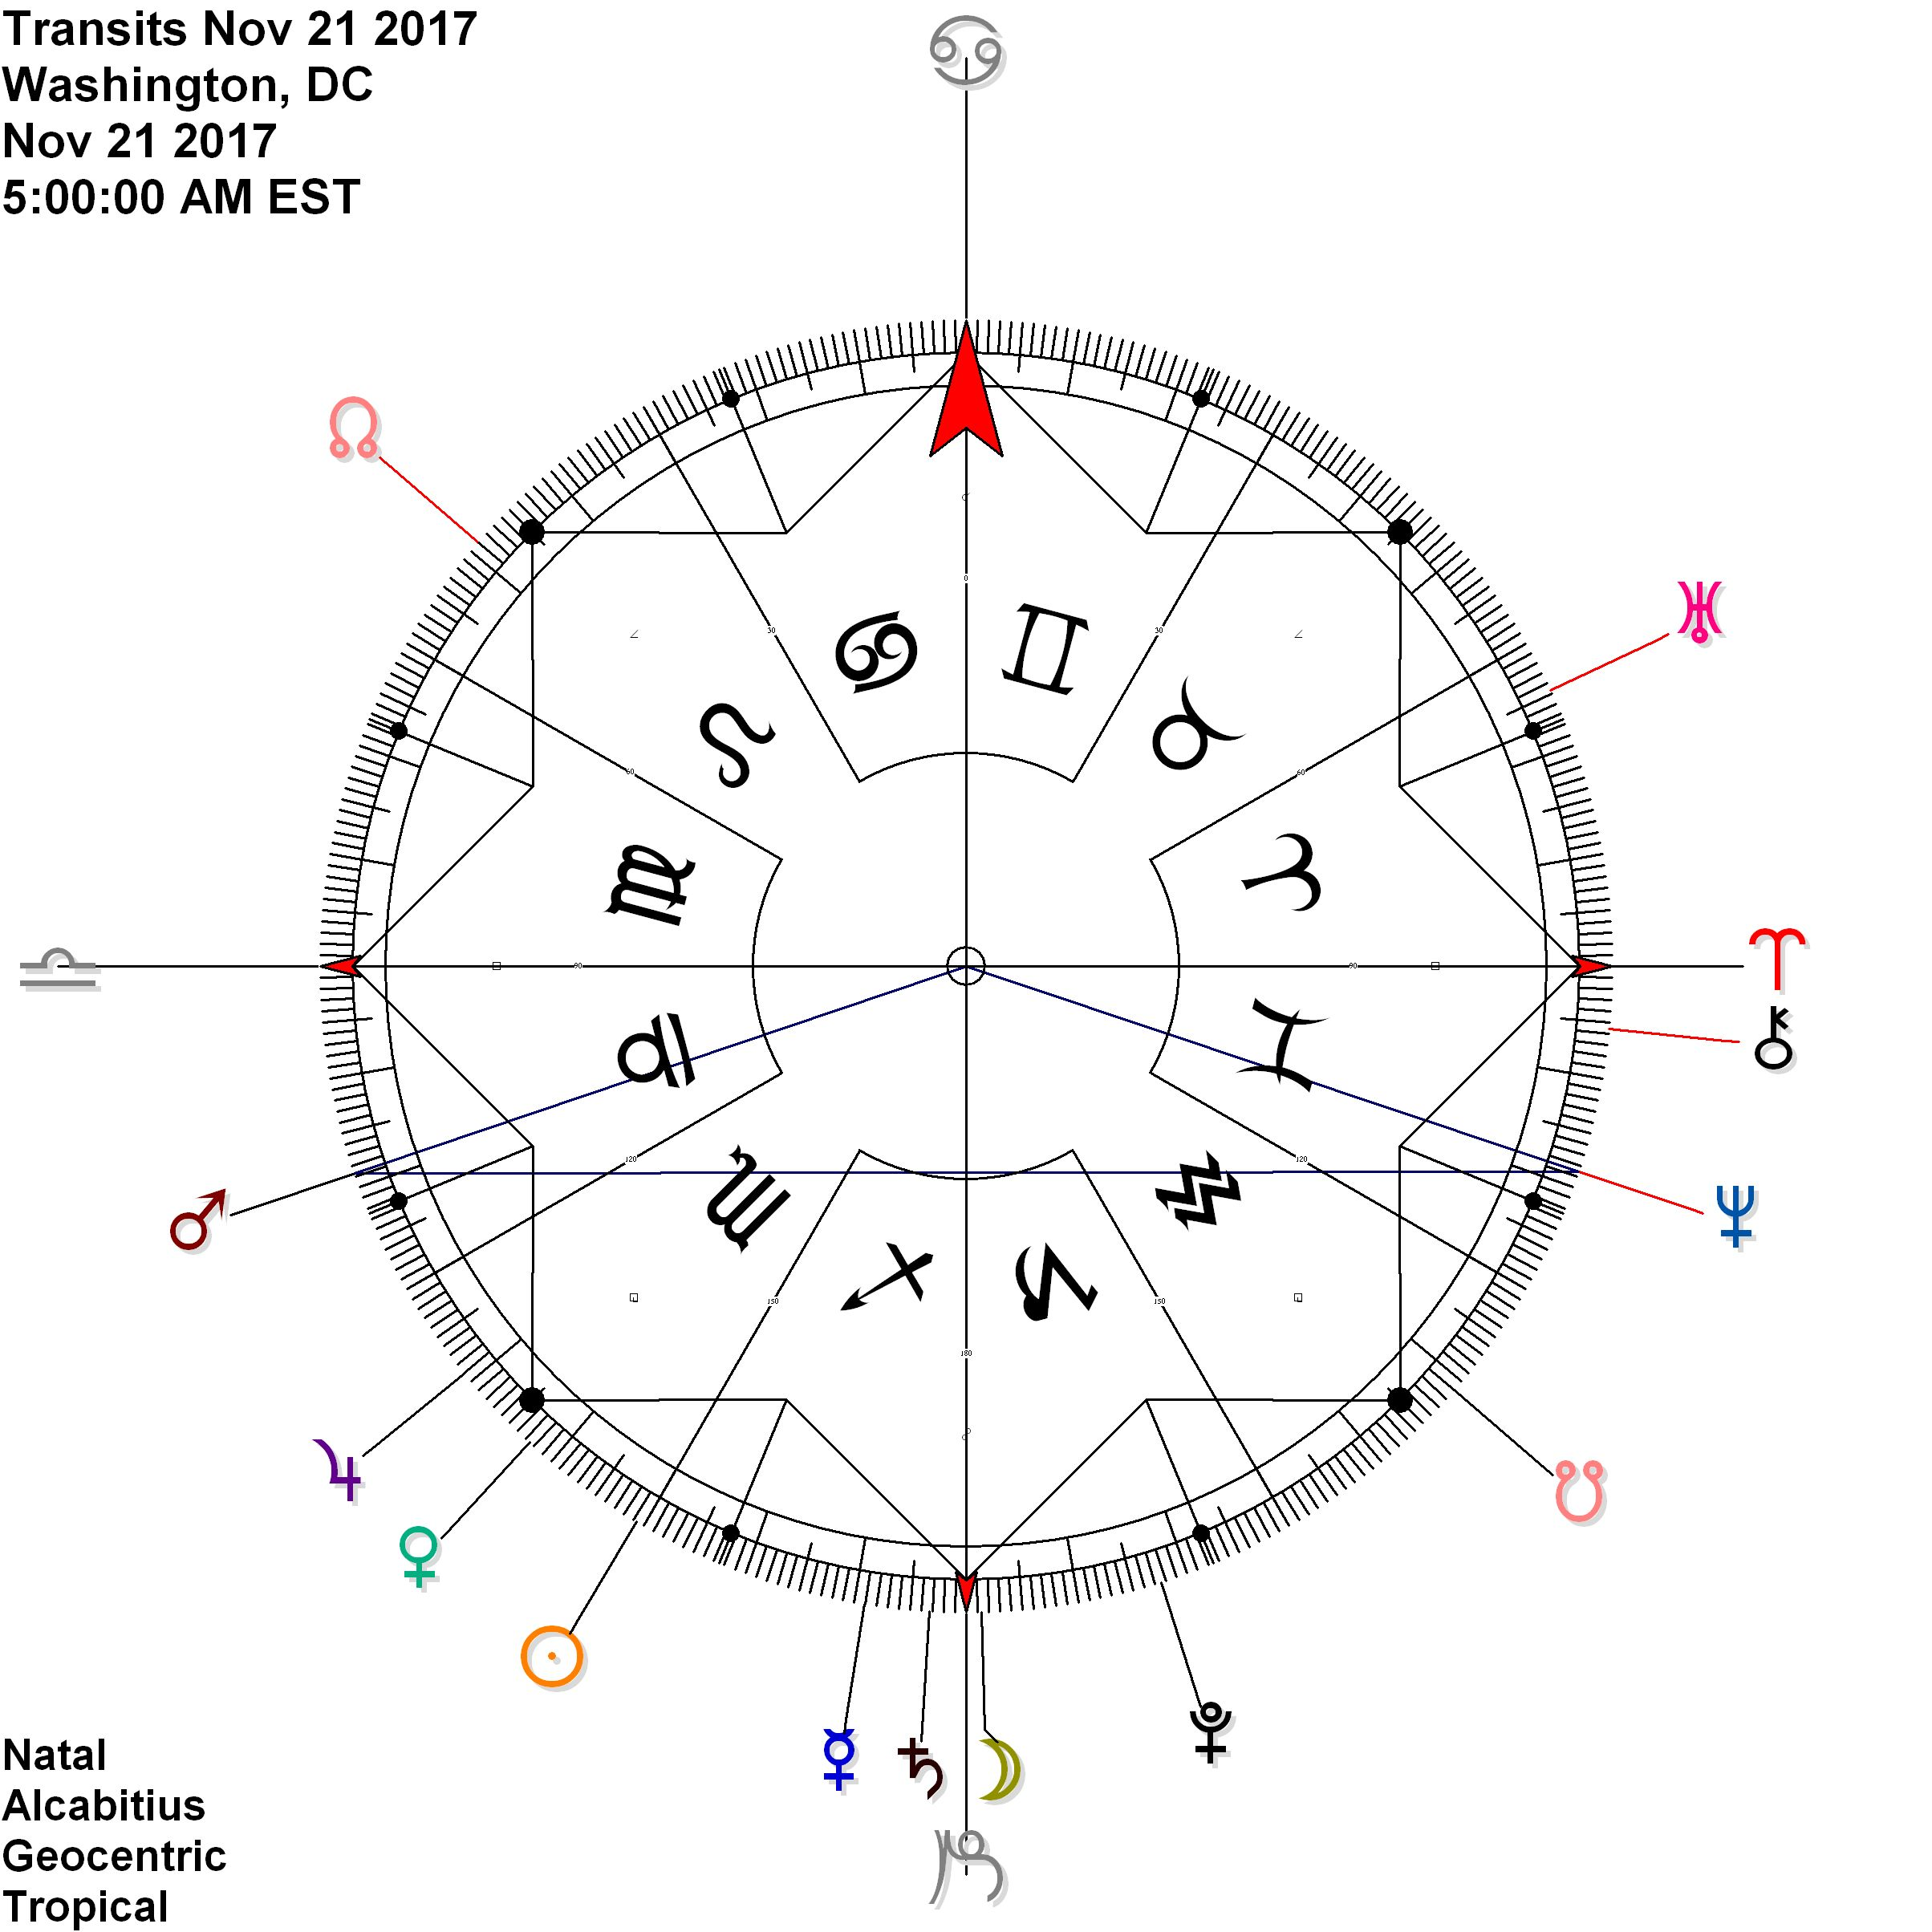 Mars in Libra reflects stationing Neptune in Pisces